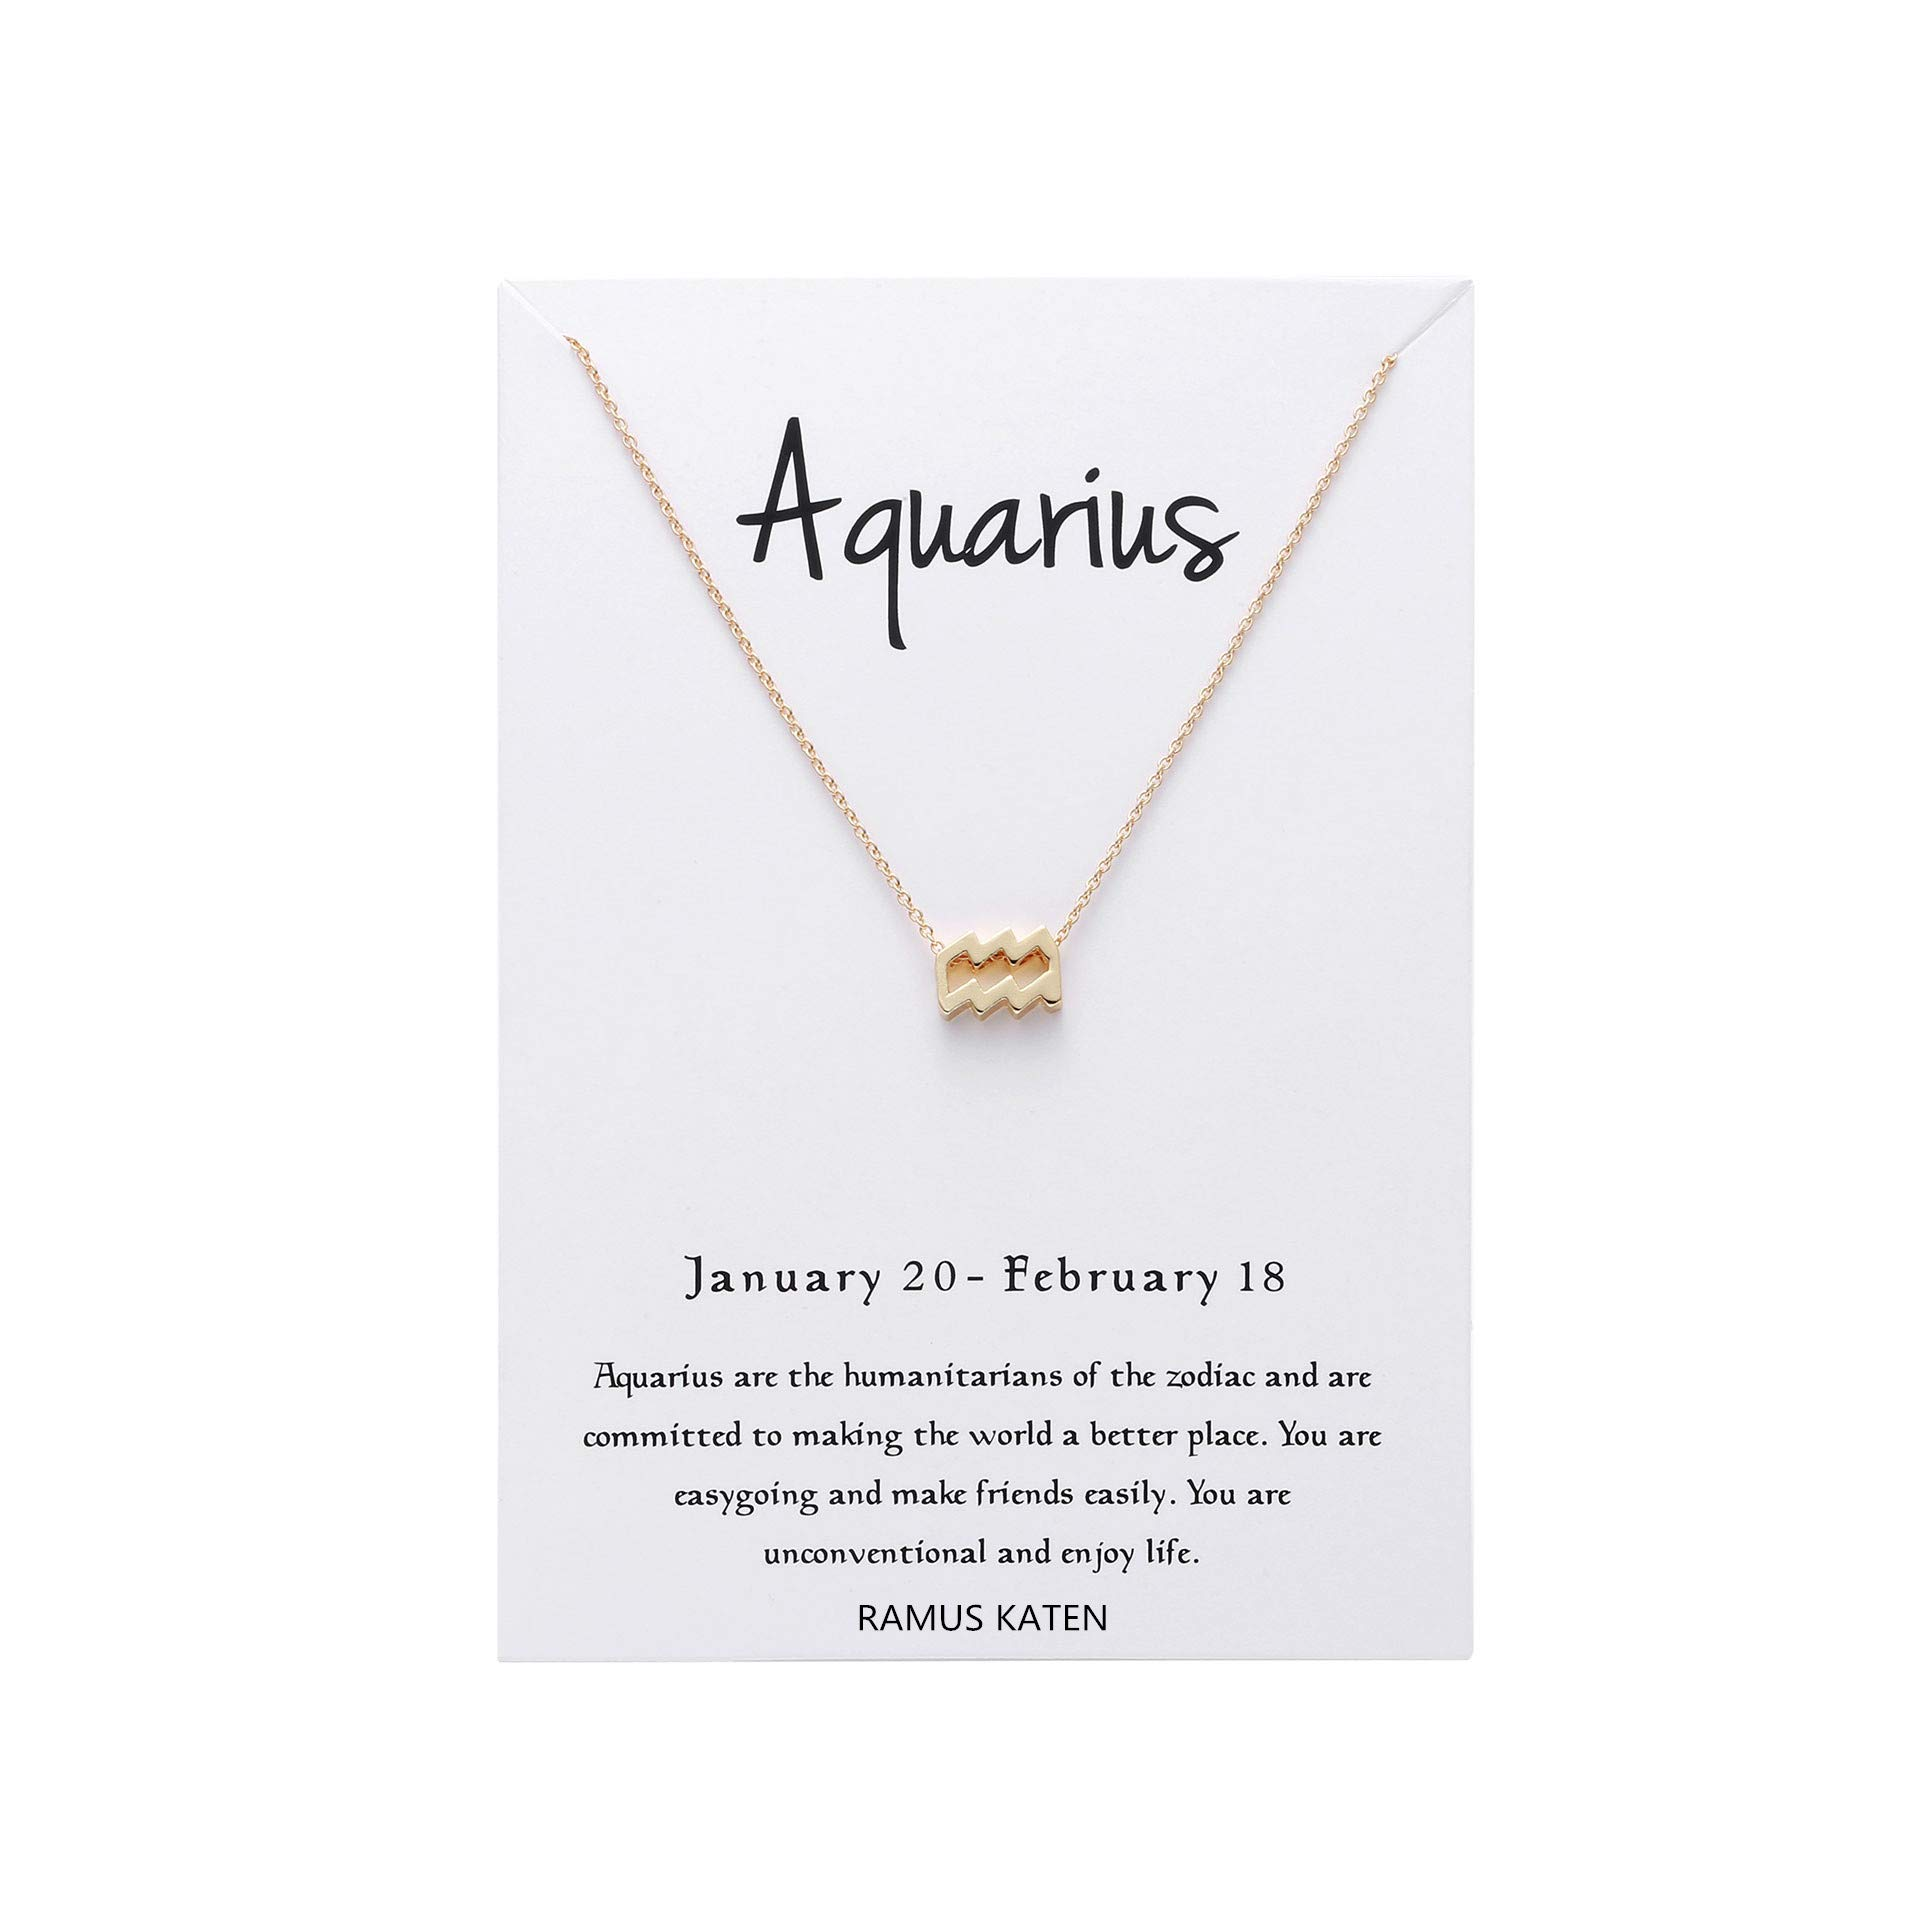 RAMUS KATEN Zodiac 12 Constellation Pendant Necklace Astrology Gold Tone Chain with Message Card